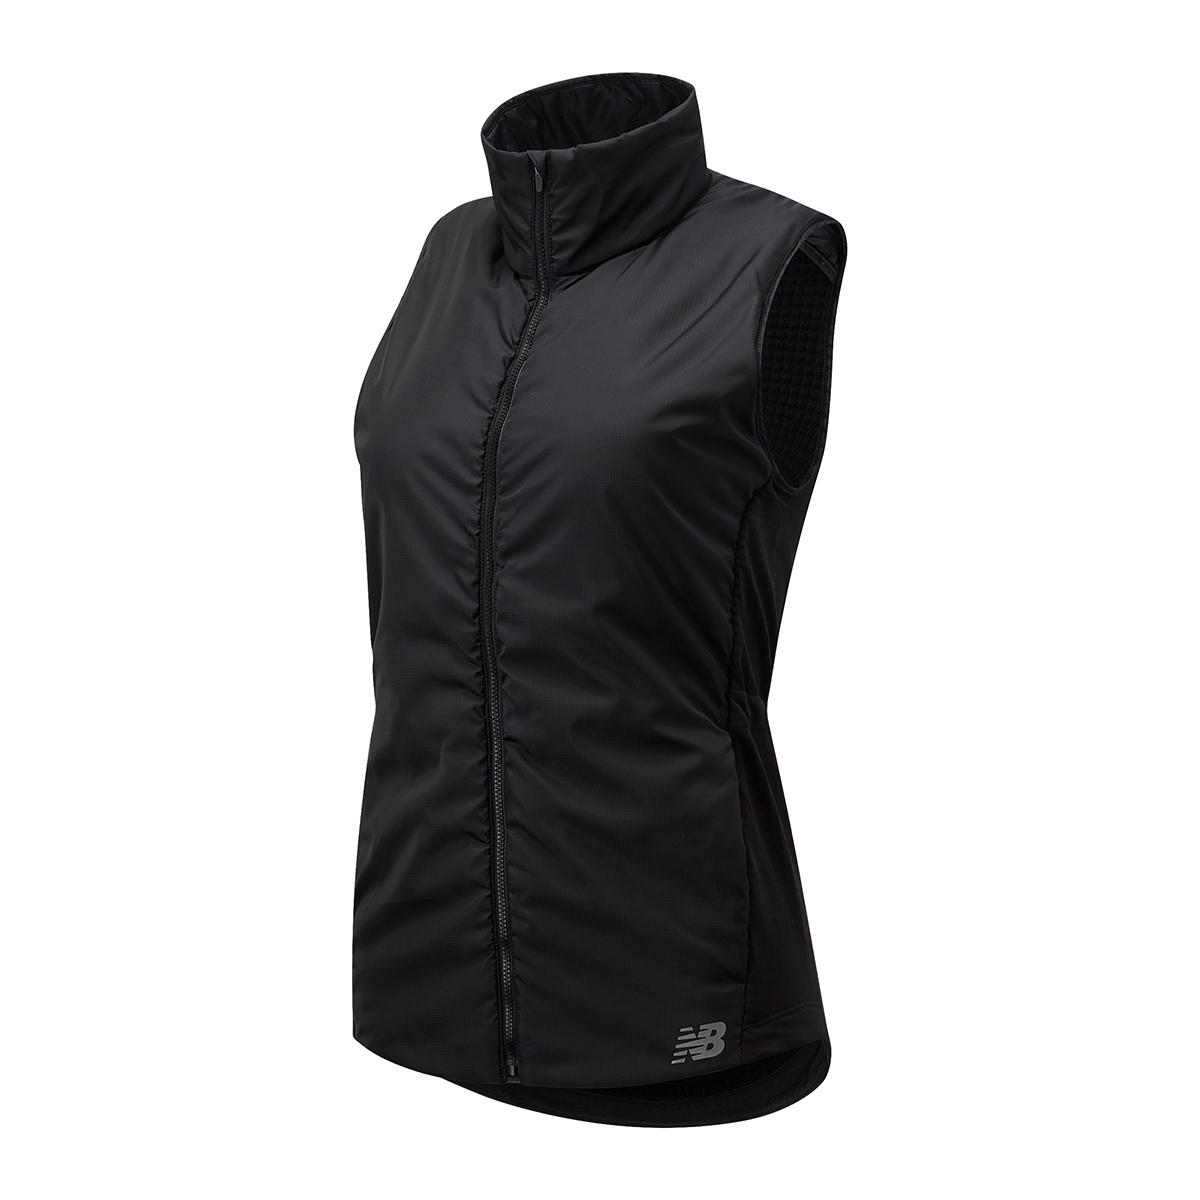 Women's New Balance Heat Grid Vest, , large, image 1